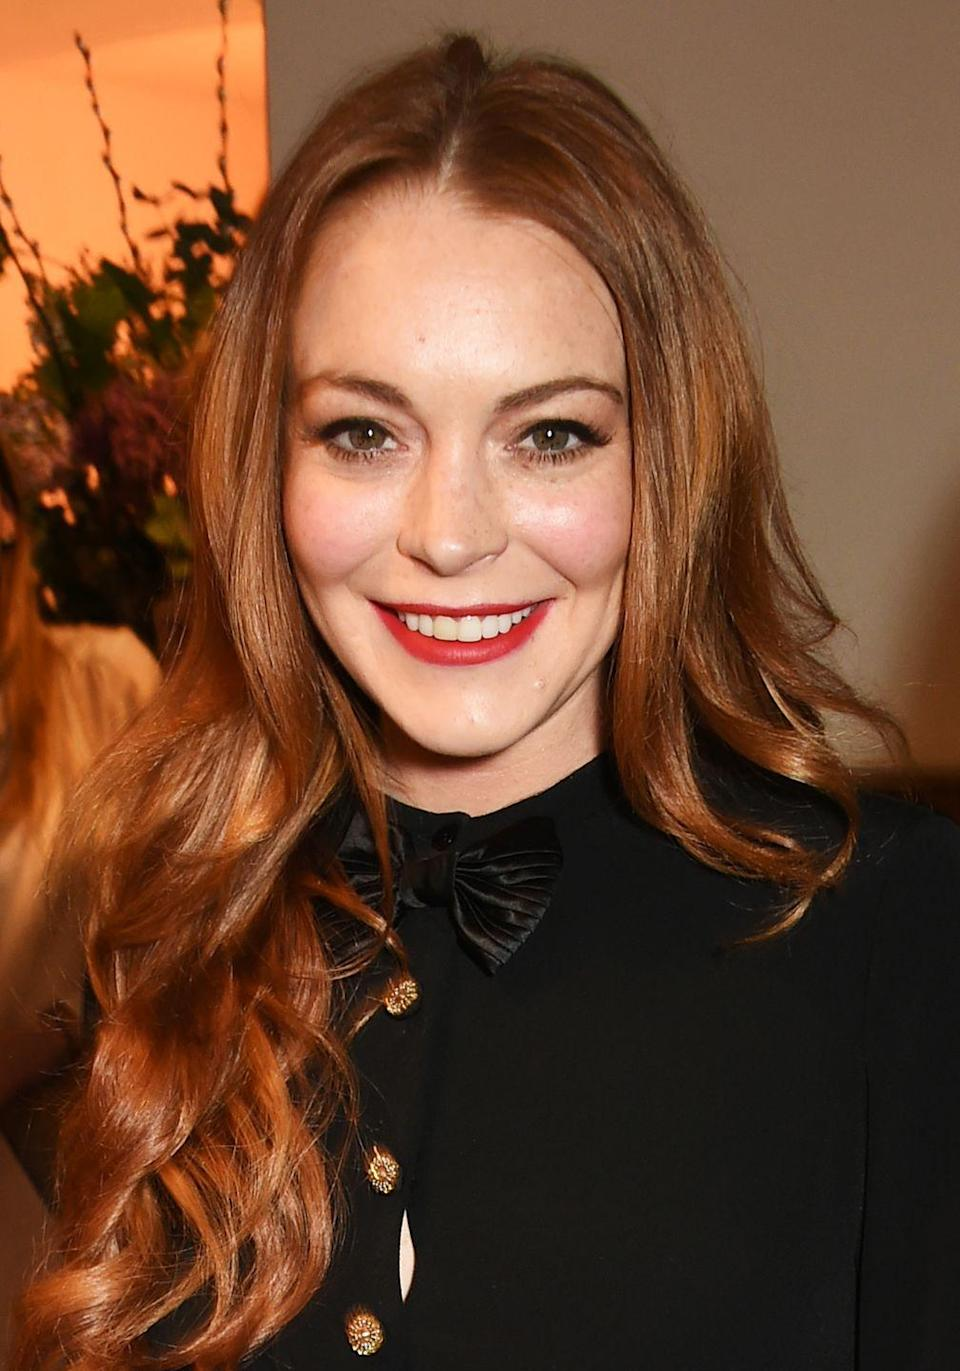 """<p>While celebrating her 27th birthday in rehab, Lohan replied to a fan who wished her a happy birthday who <a href=""""http://www.dailymail.co.uk/tvshowbiz/article-2355057/Lindsay-Lohan-pans-2007-horror-movie-I-Know-Who-Killed-Me-birthday-Twitter-session-rehab.html"""" rel=""""nofollow noopener"""" target=""""_blank"""" data-ylk=""""slk:said"""" class=""""link rapid-noclick-resp"""">said</a>, """"I seriously watched <em>I Know Who Killed Me</em> twice last night."""" The actress then responded, """"Two times too many."""" </p>"""